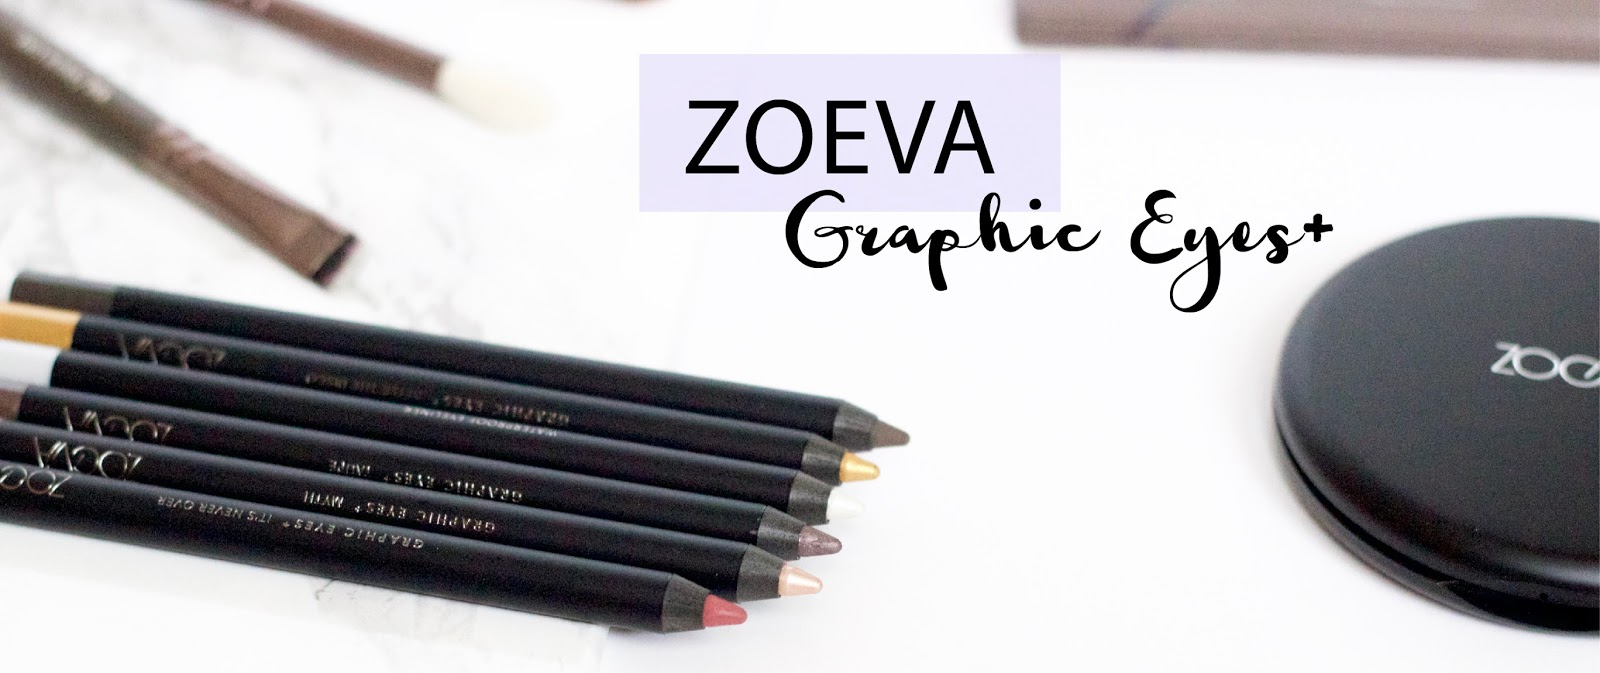 Zoeva graphic eyes